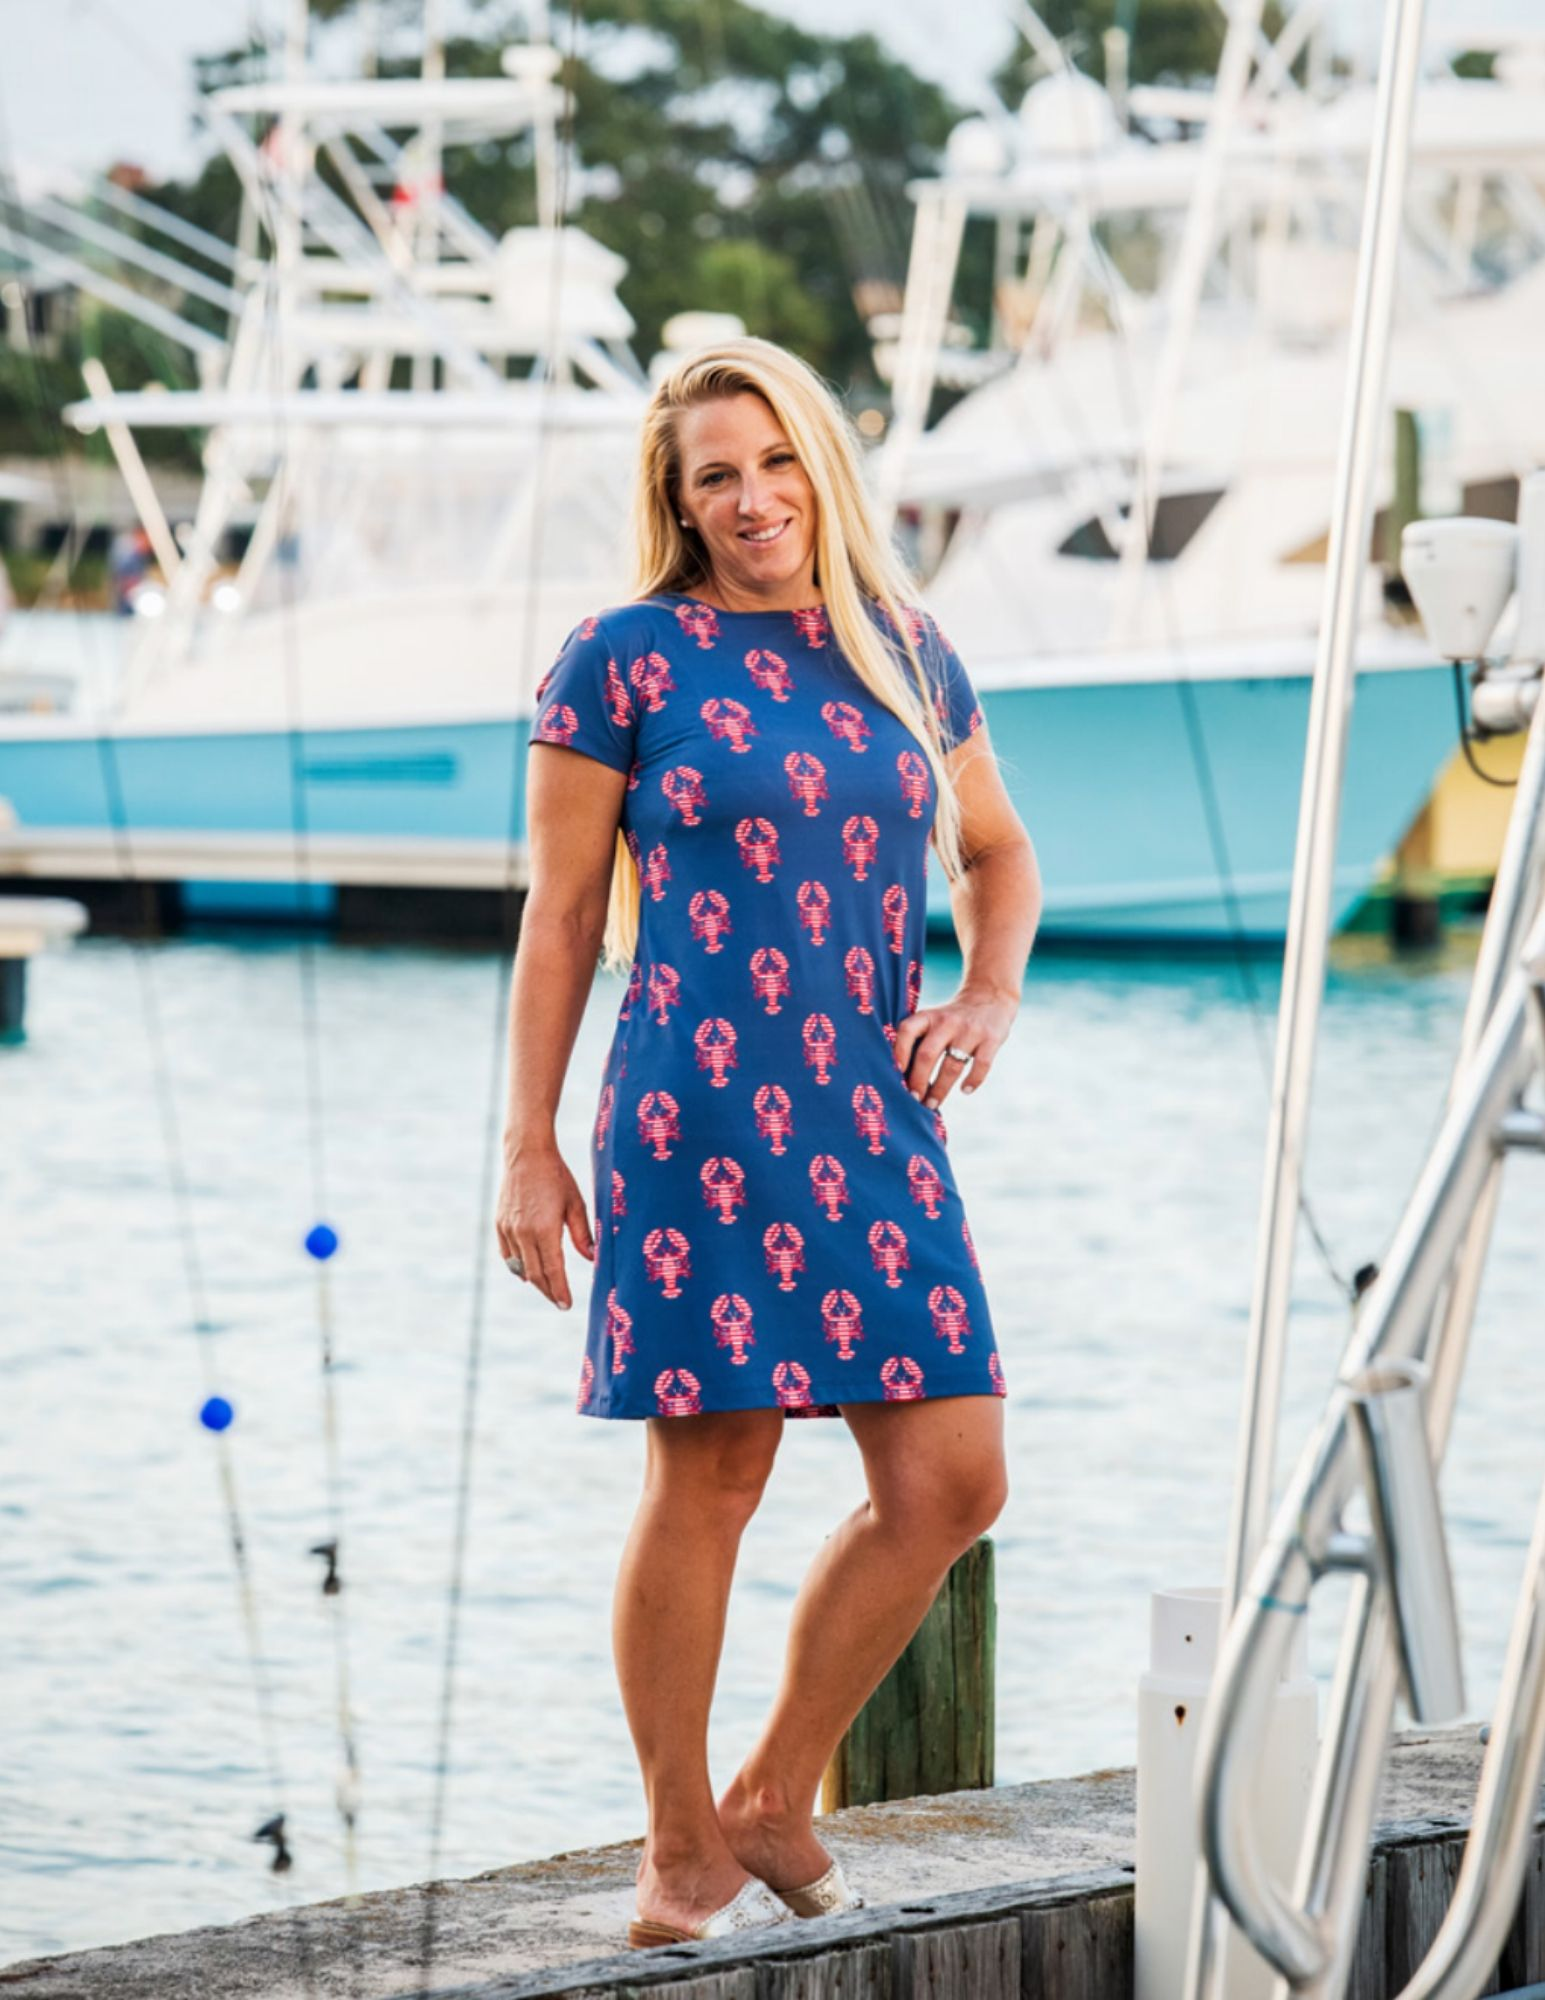 Summer Lovin' in the Marina Lobsters Dress from Sailor-Sailor